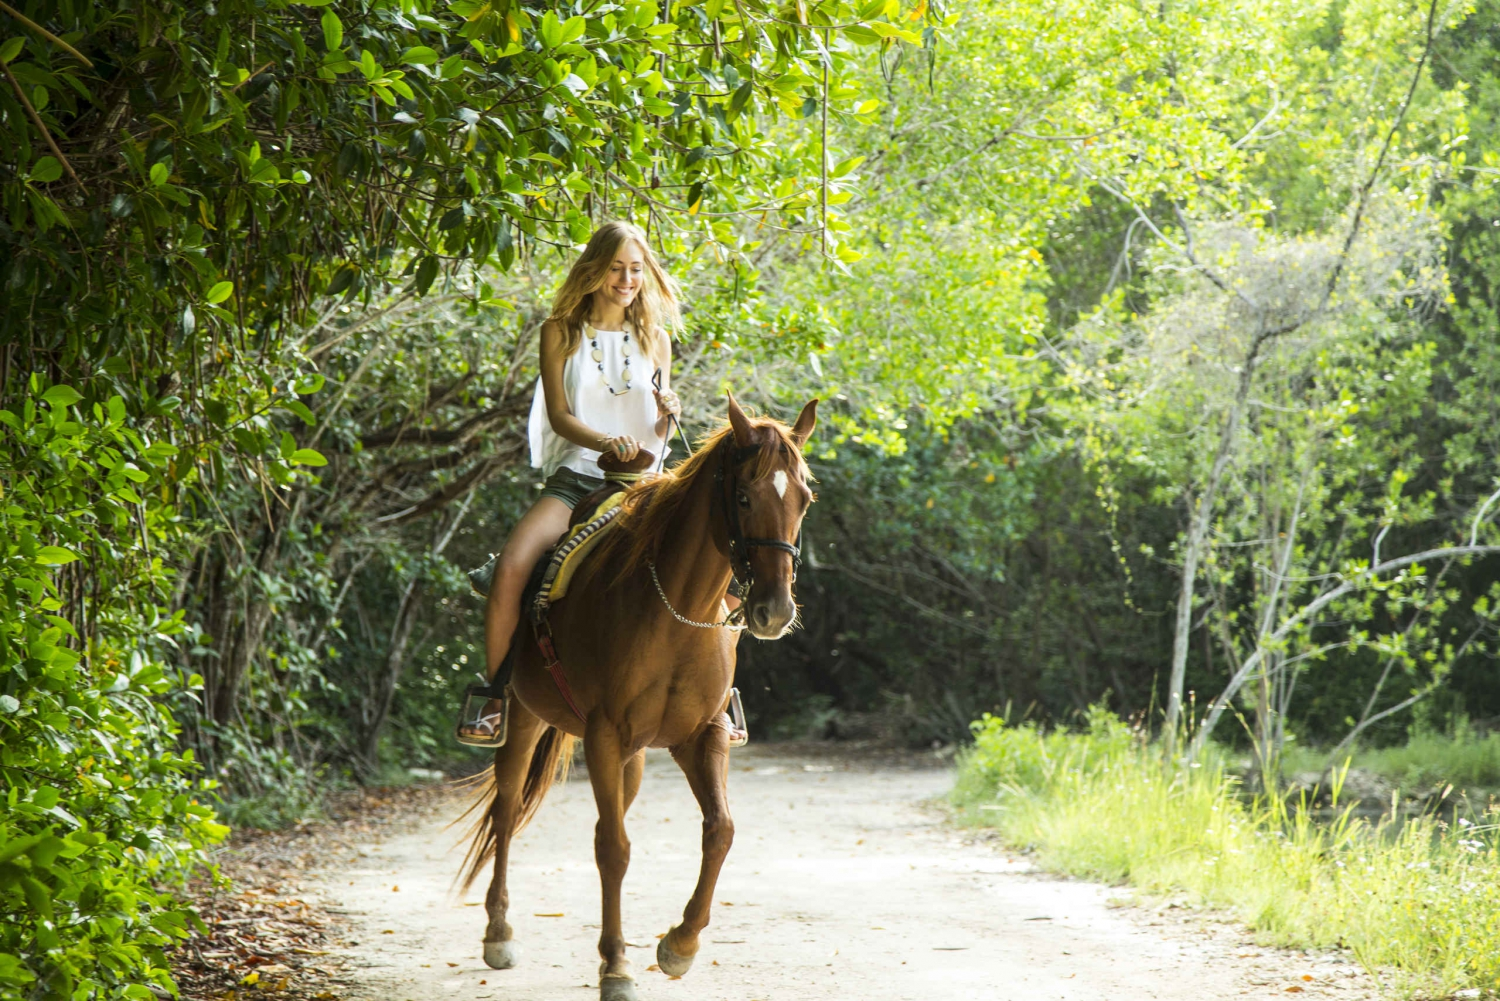 Horseback Riding in the Tropical Jungle